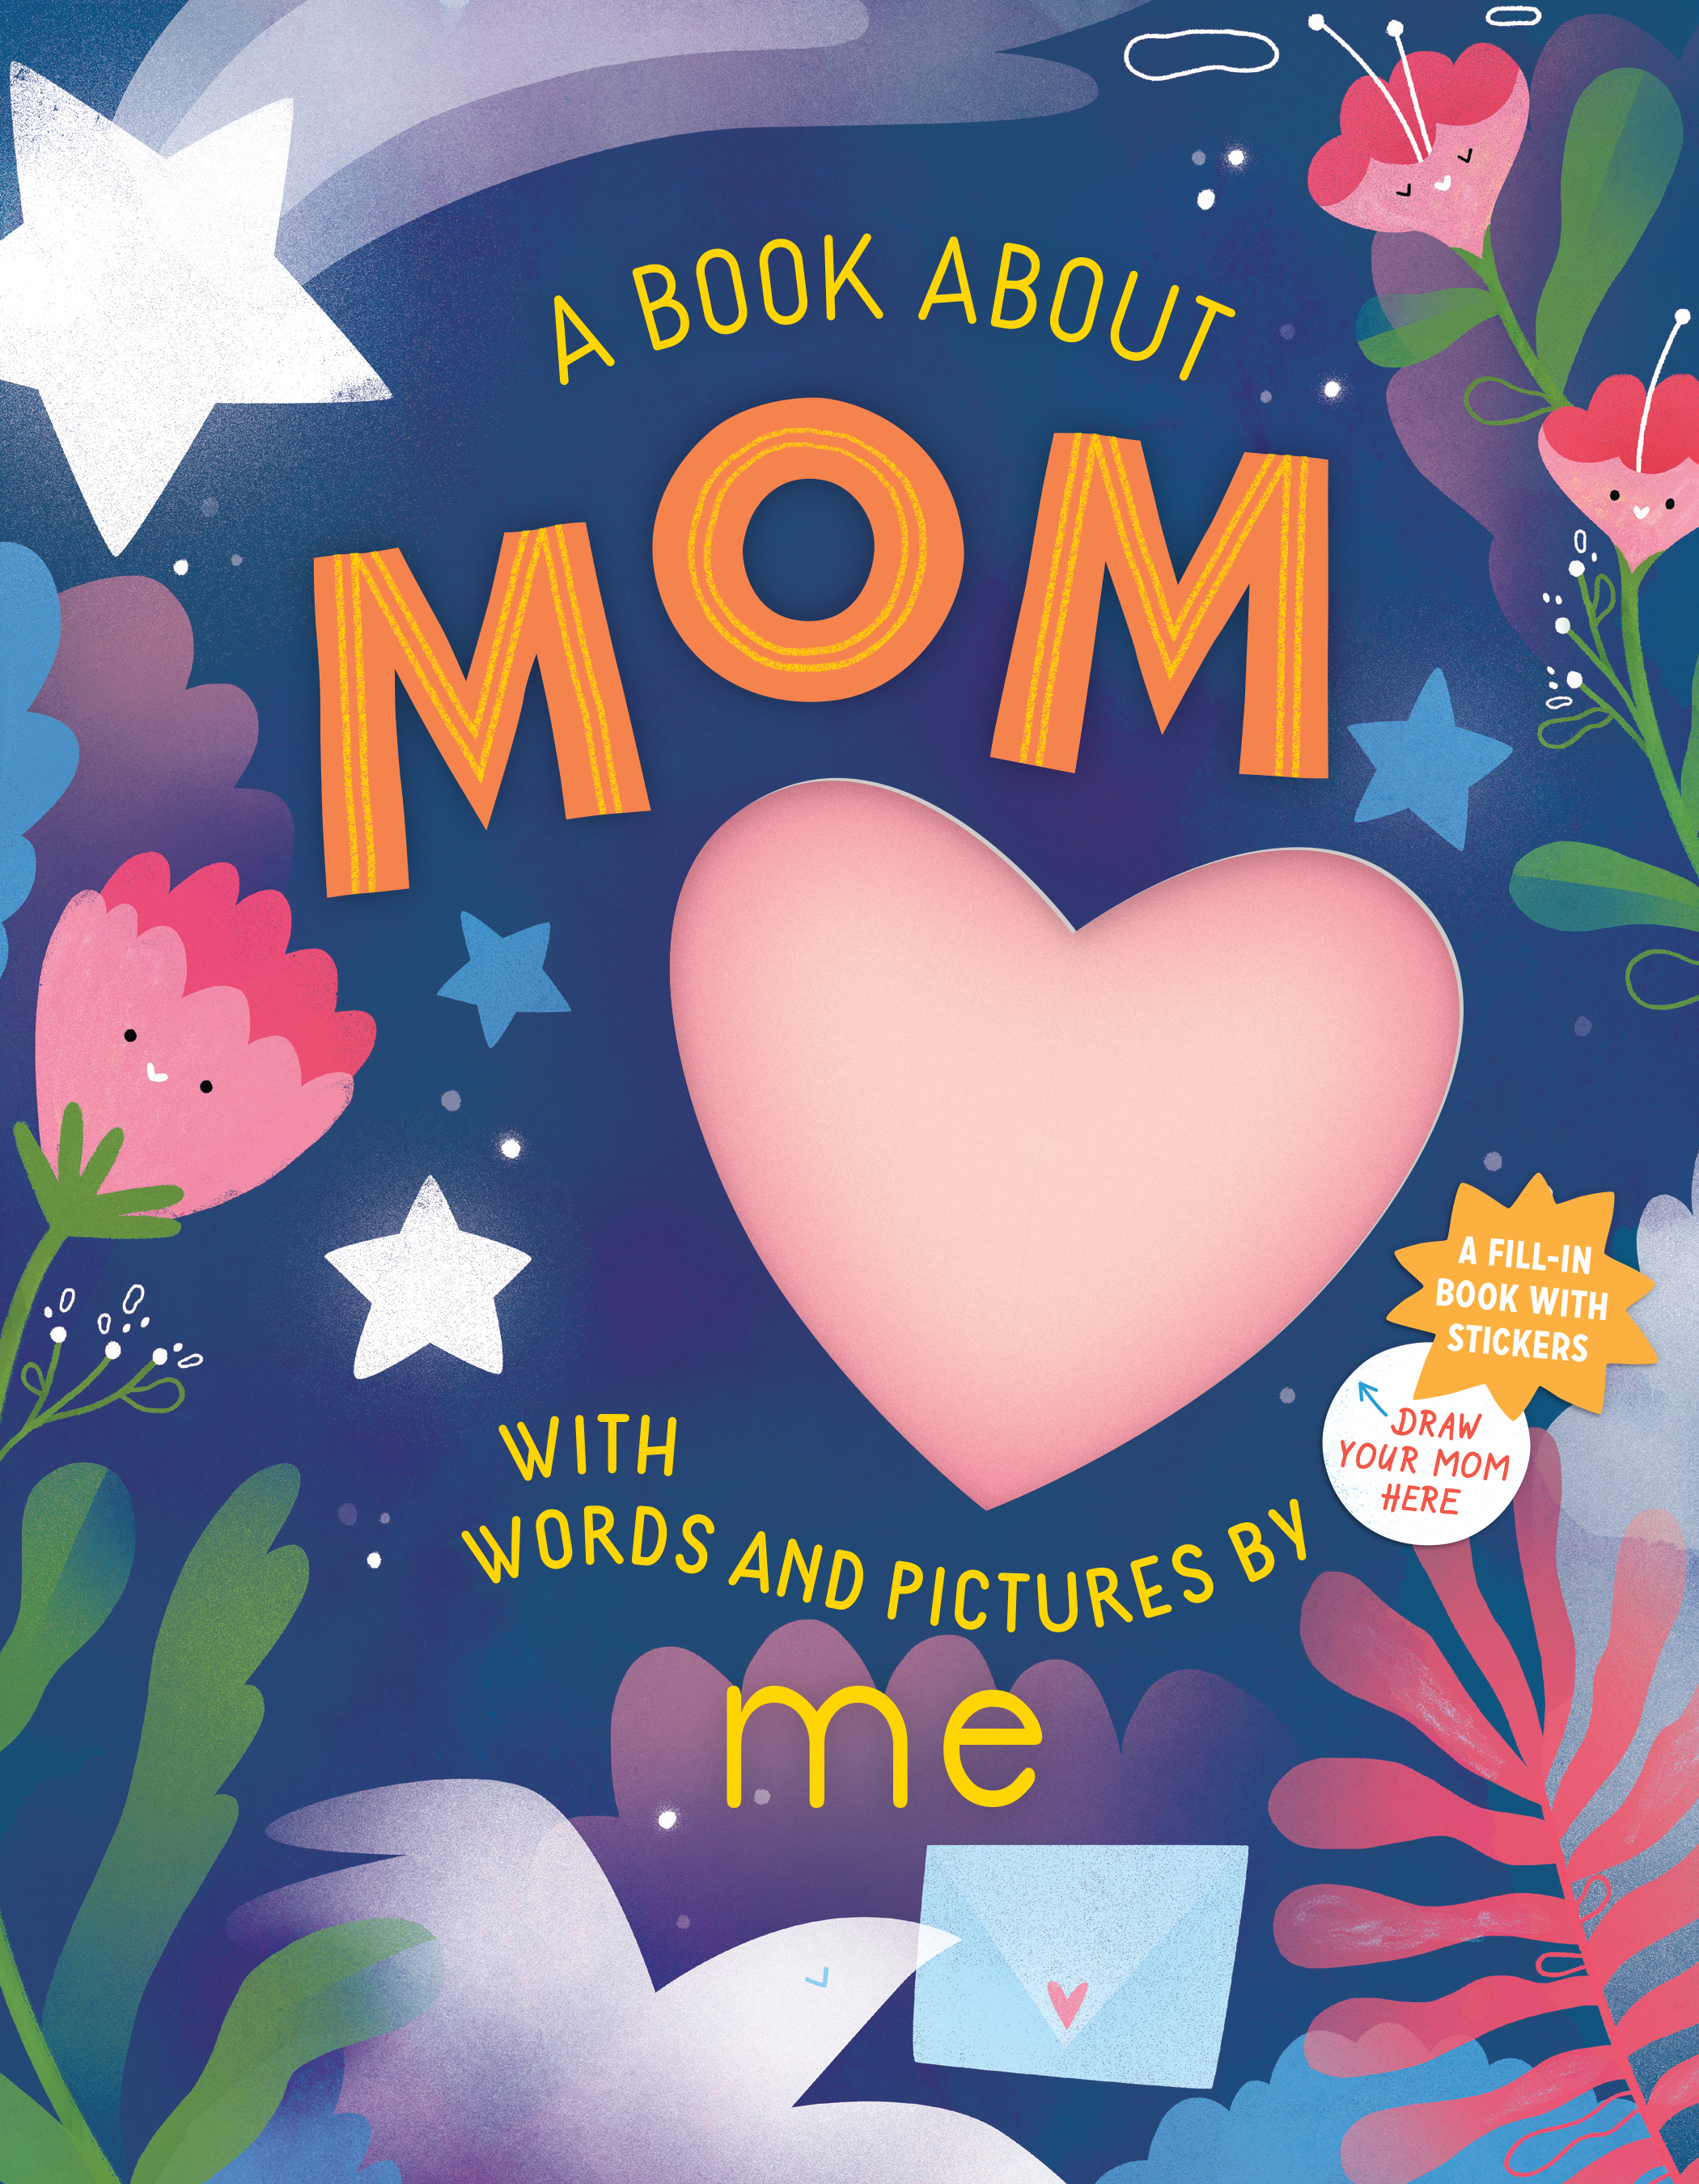 A Book about Mom with Words and Pictures by Me